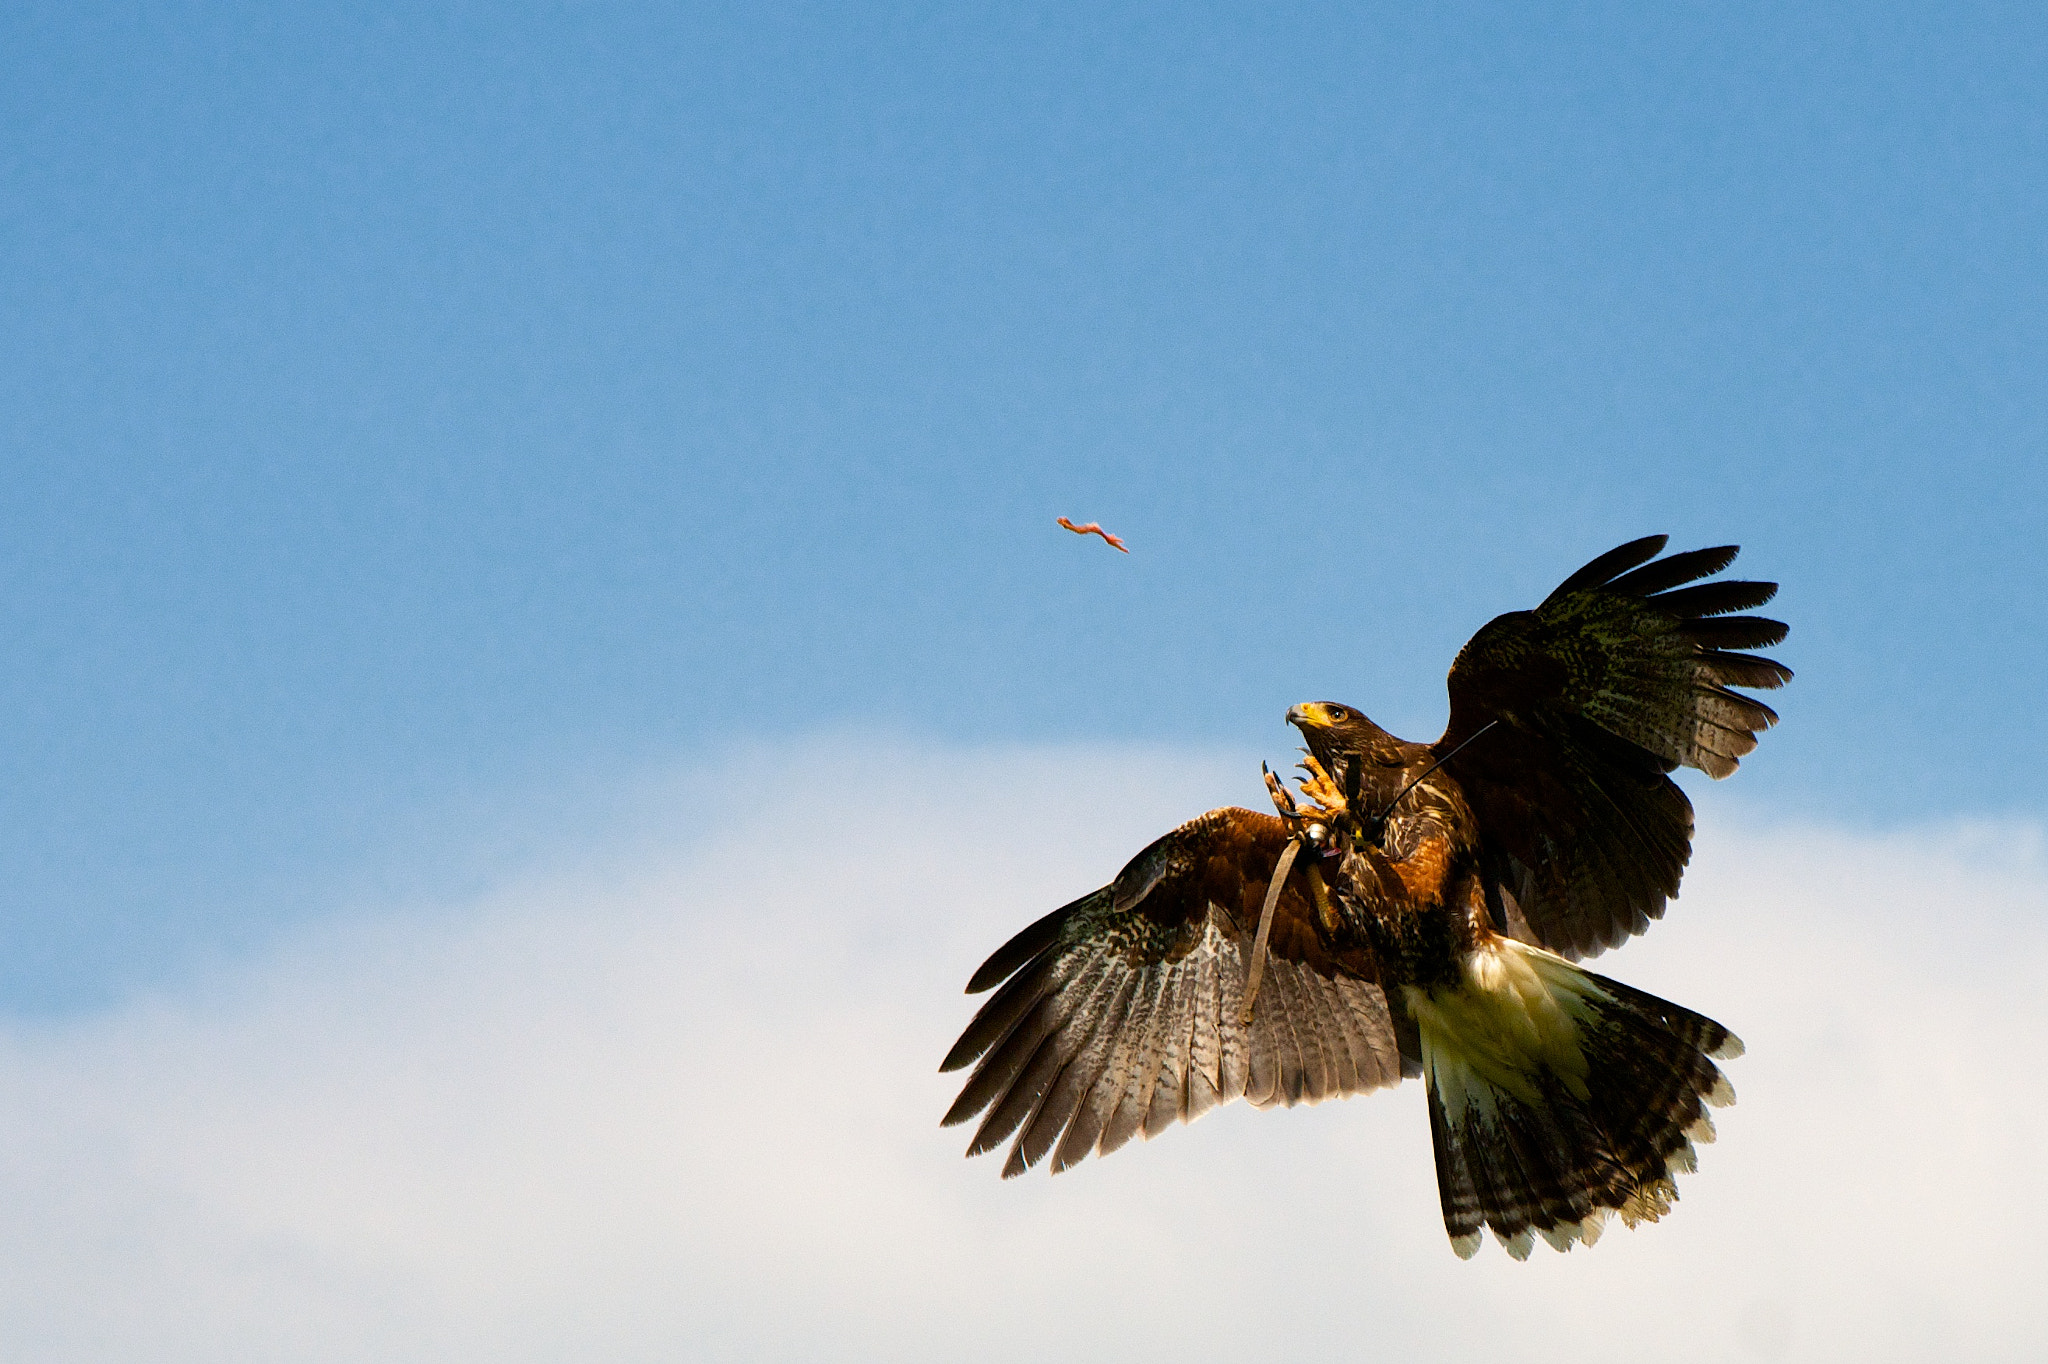 Photograph The Catch by Martin P. on 500px